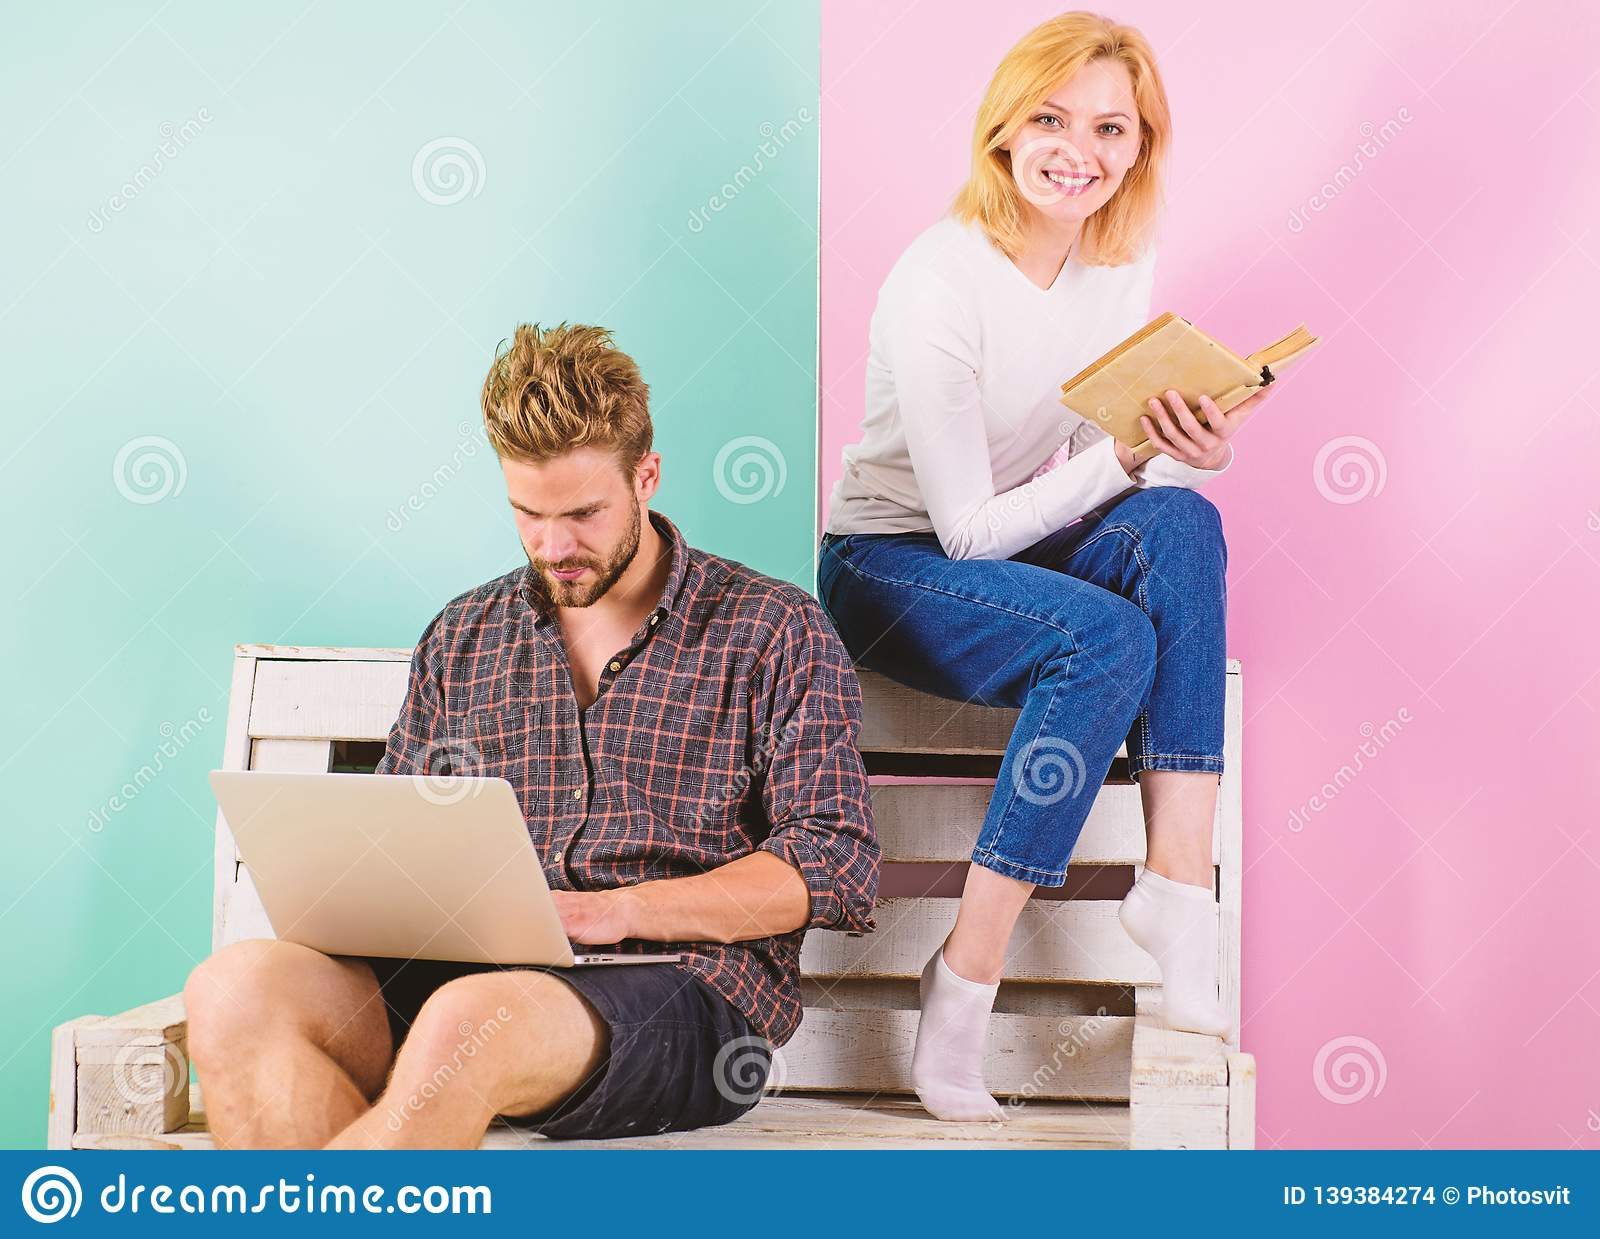 Youth spend leisure preparing for entrance exam. Couple students with book and laptop studying. Man and woman use